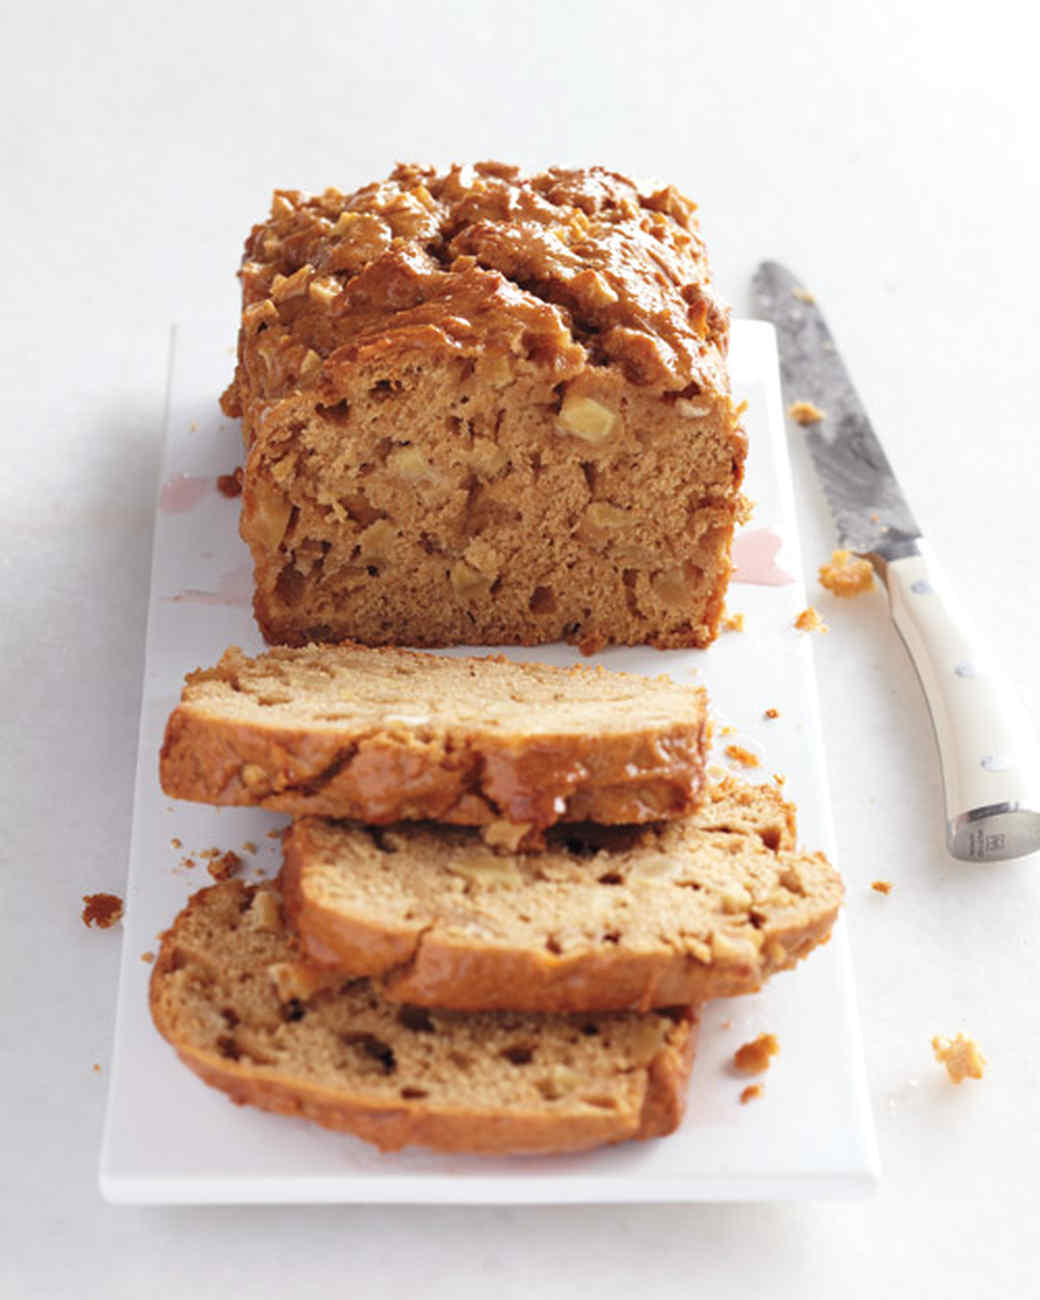 Glazed Apple-Spice Cake